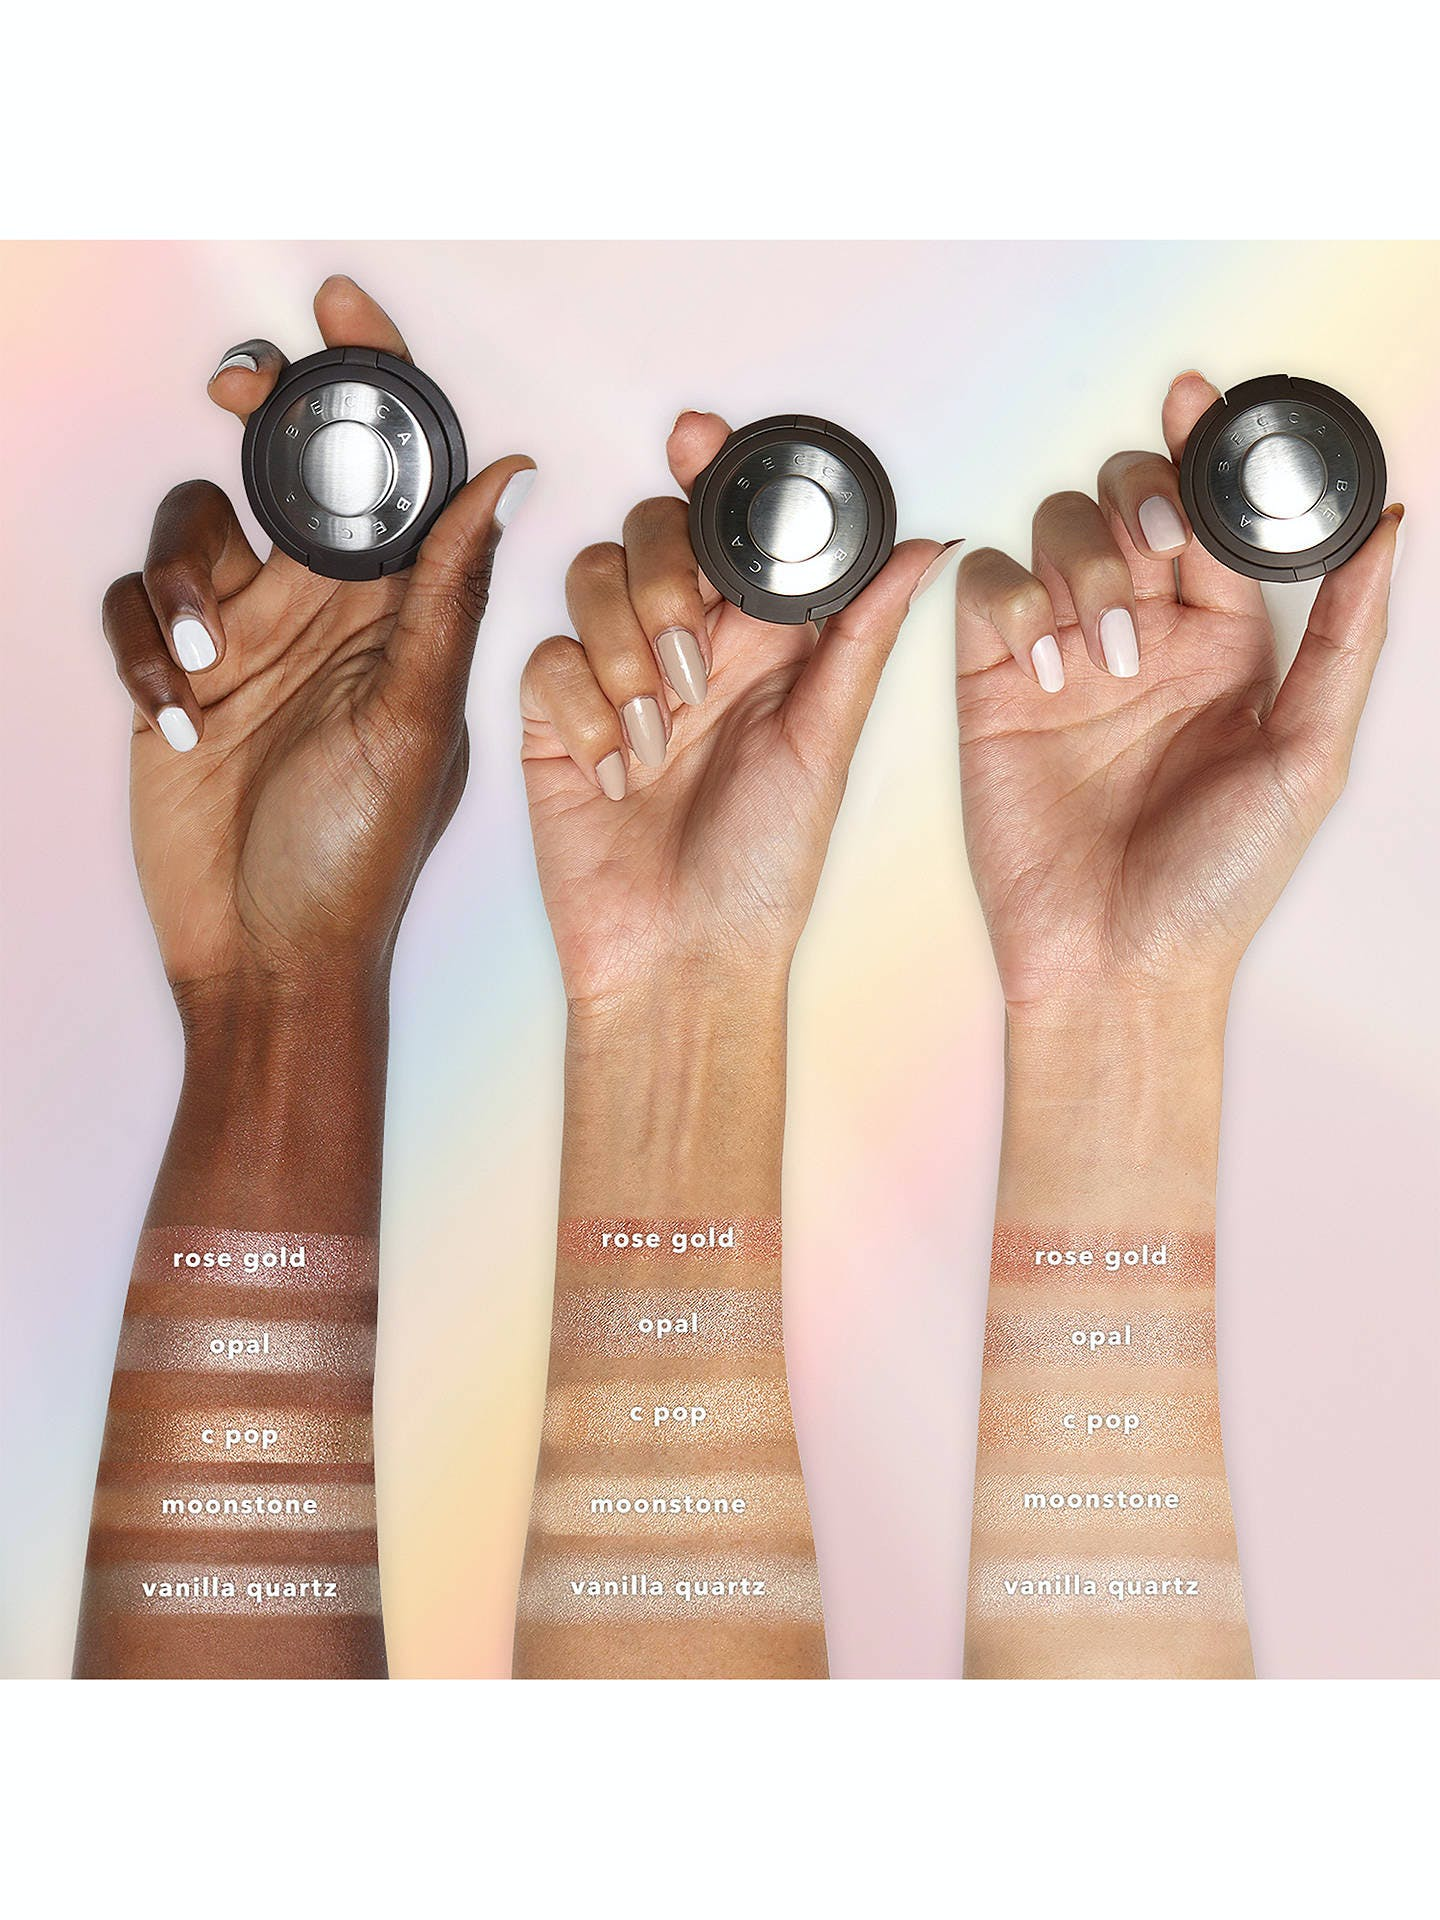 Becca highlighter swatches on three different arms